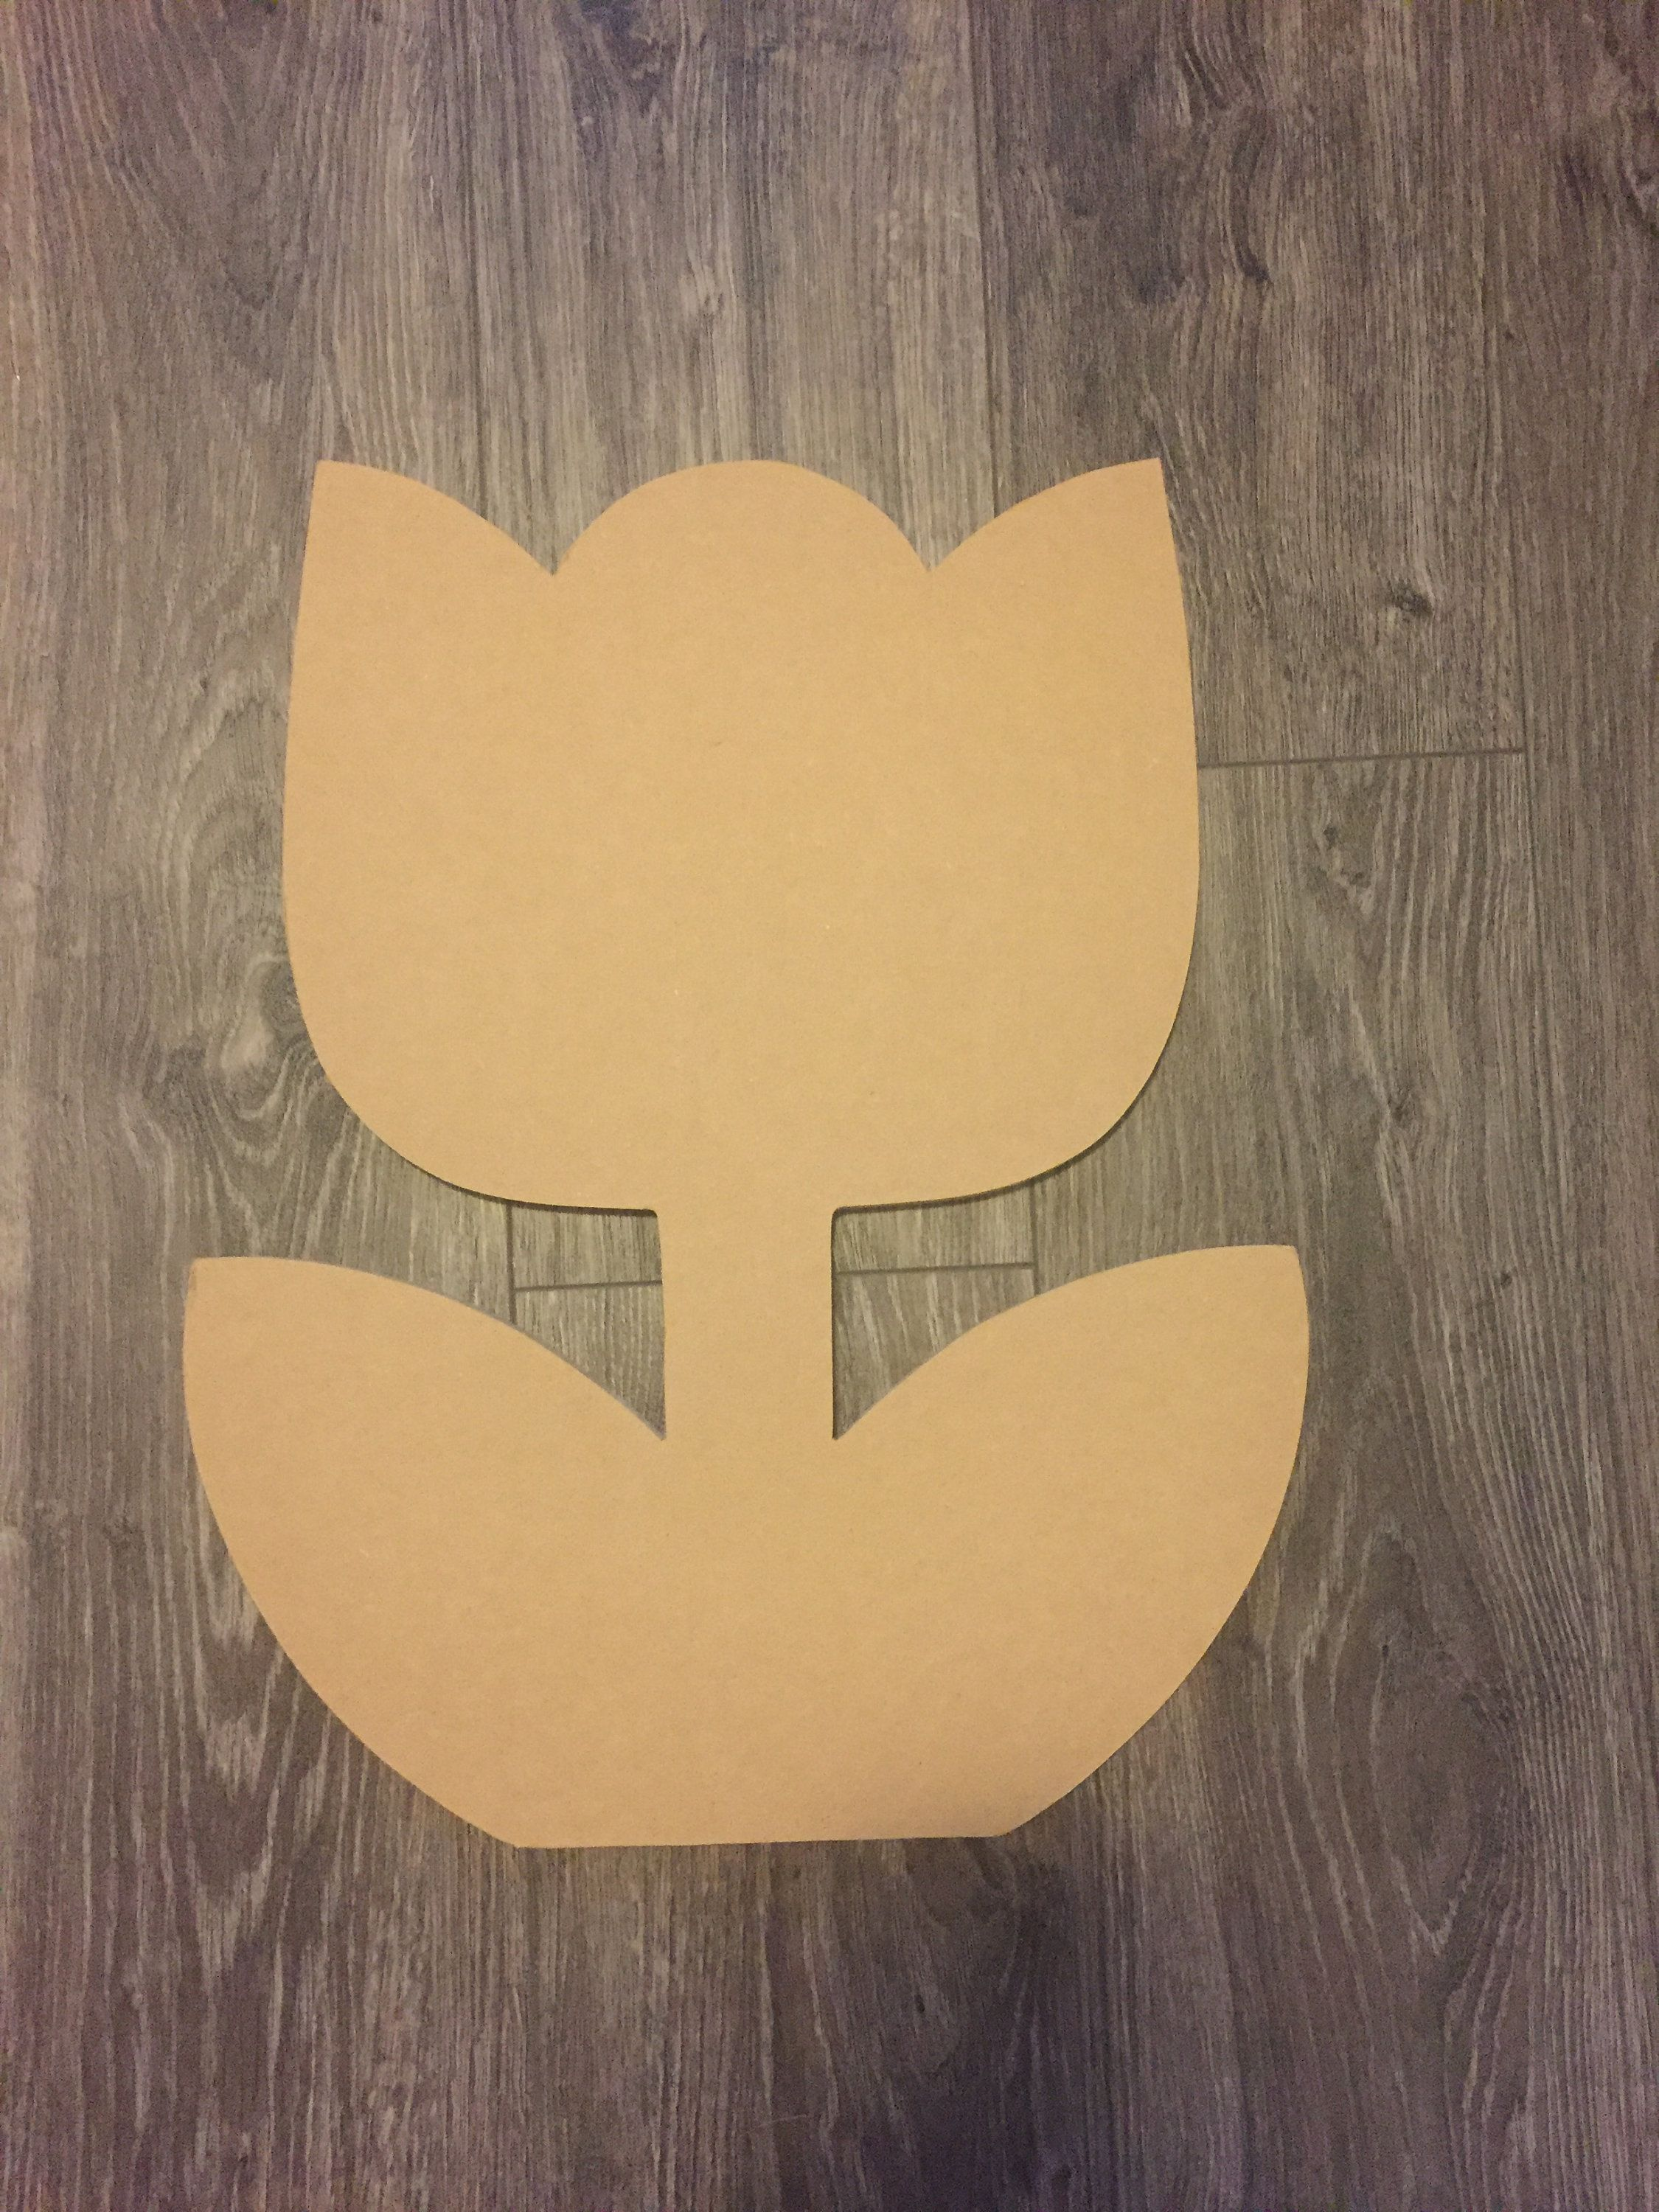 Various Sizes Unfinished Wood Tulip Laser Cutout Ready to Paint /& Personalize Wreath Accent Door Hanger